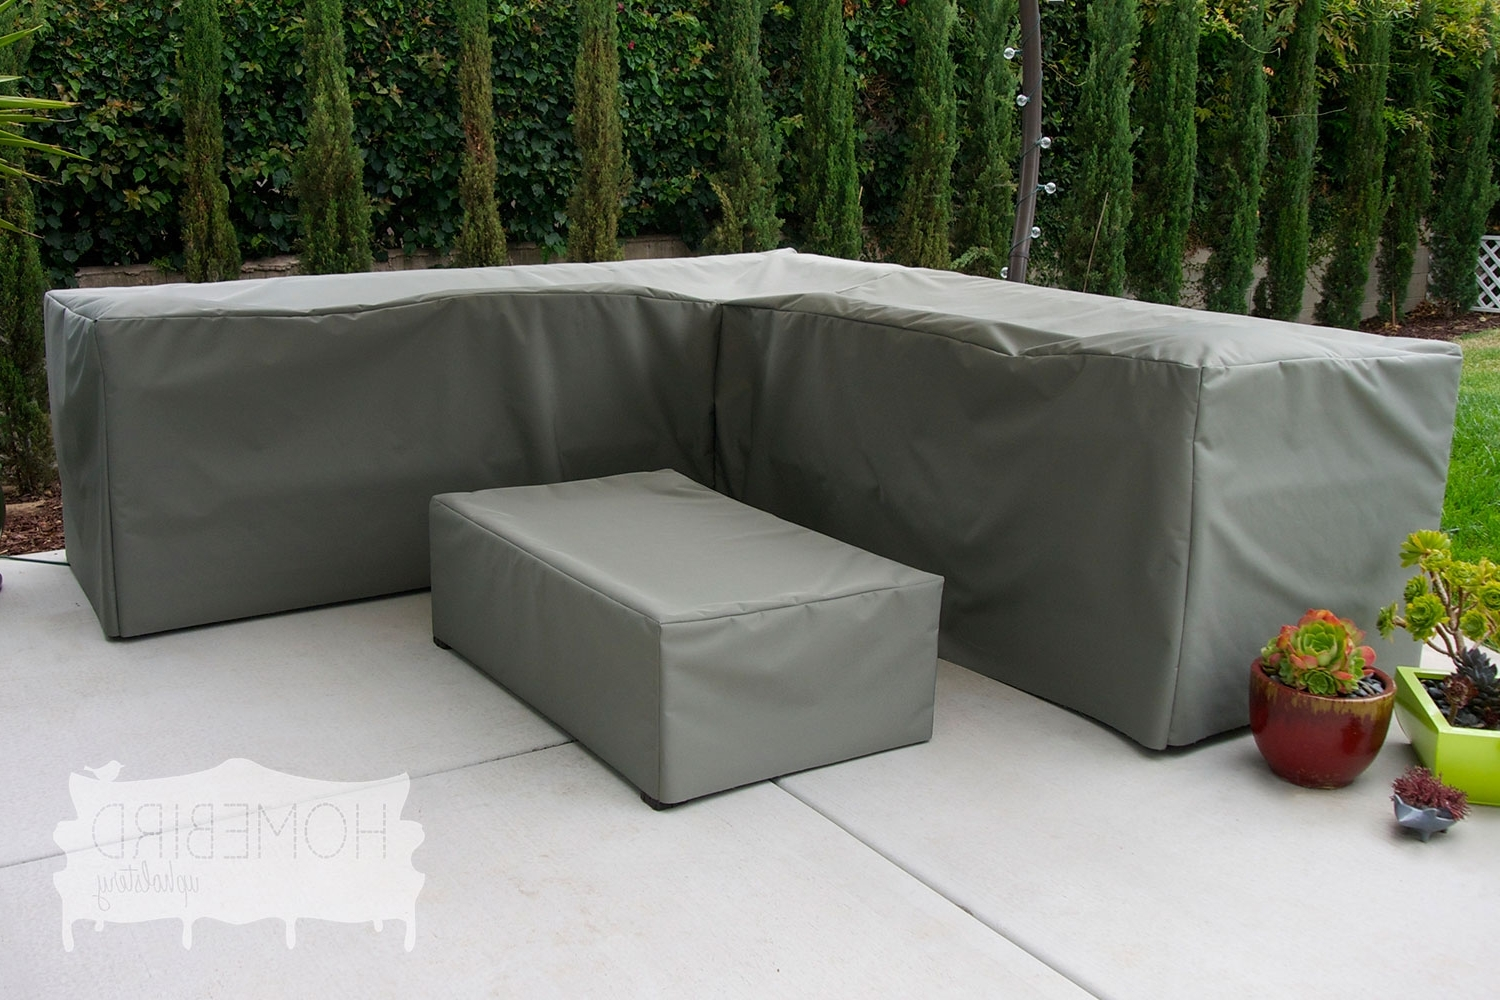 Widely Used Patio Conversation Sets With Covers In Patio Table: Covered Patio Seating Patio Cover Designs As Well As (View 18 of 20)